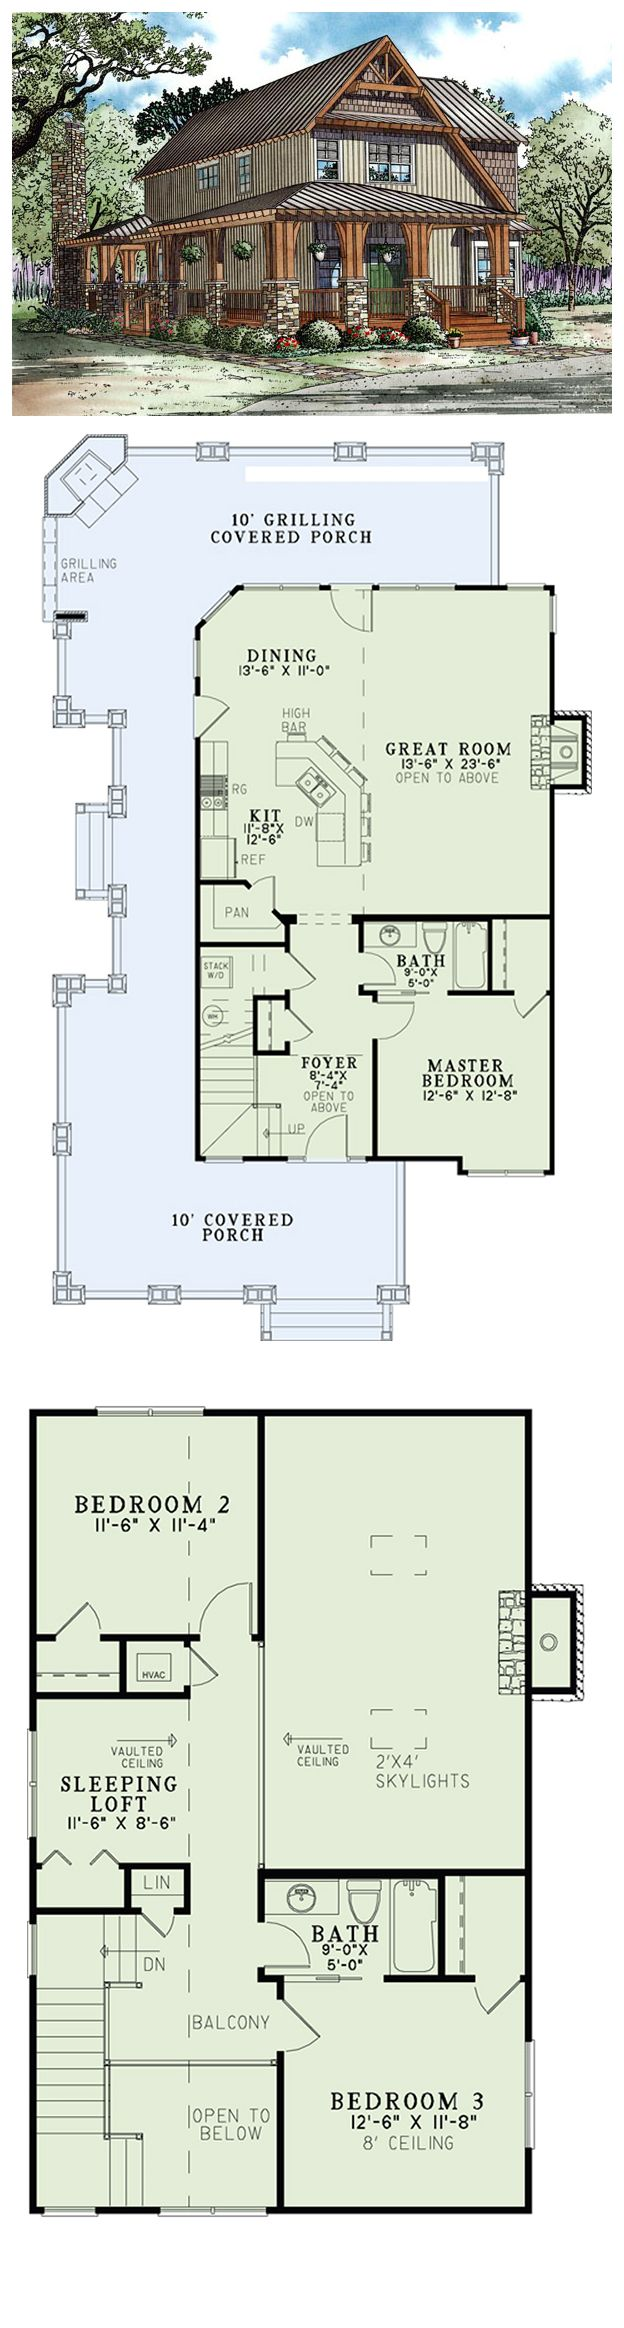 House Plan 82251 | Total living area: 1705 sq ft, 3 bedrooms & 2 bathrooms. Family and friends will create